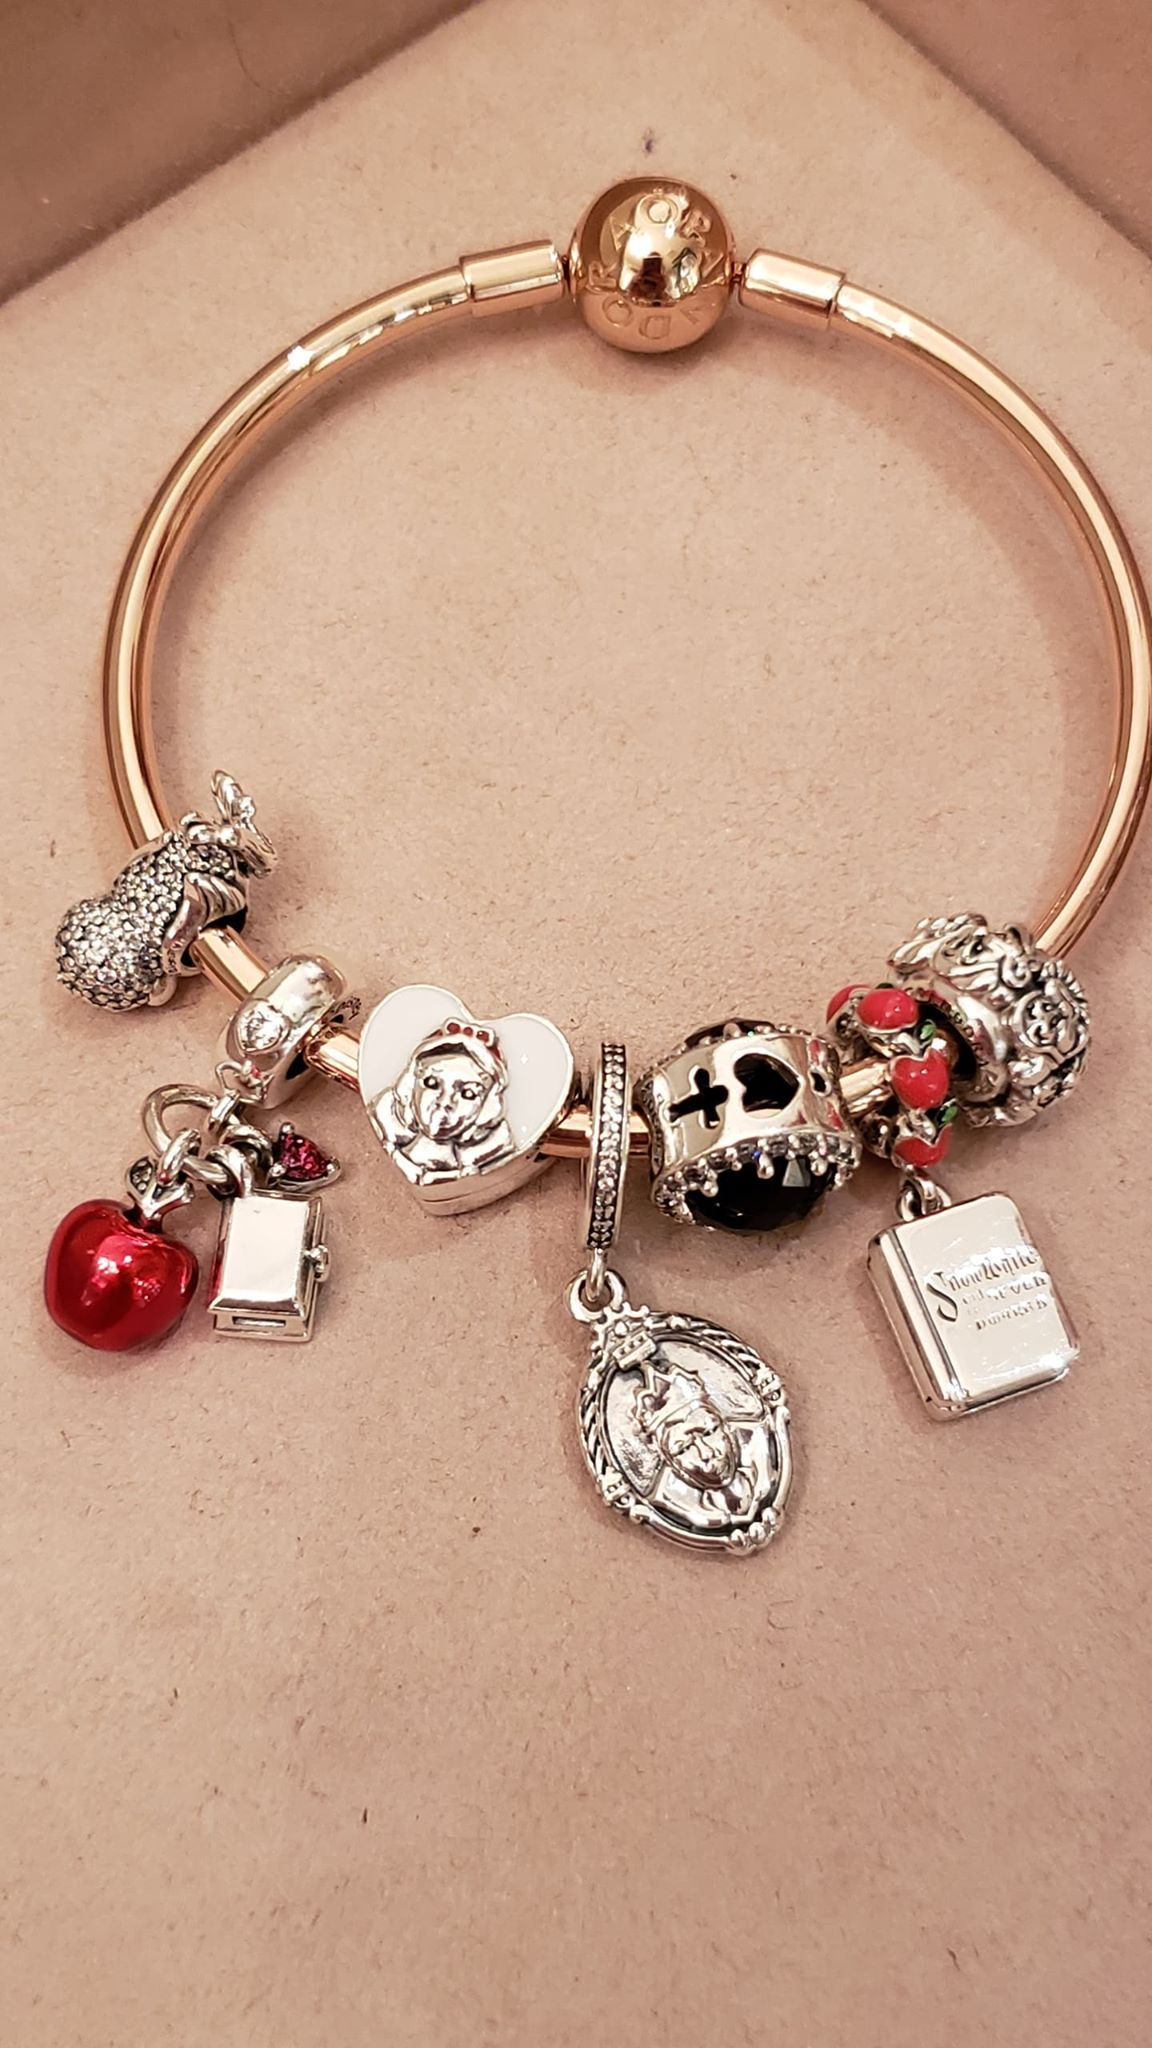 775c6f60a Disney Parks Pandora Collection Is Now Available Online | Disney ...